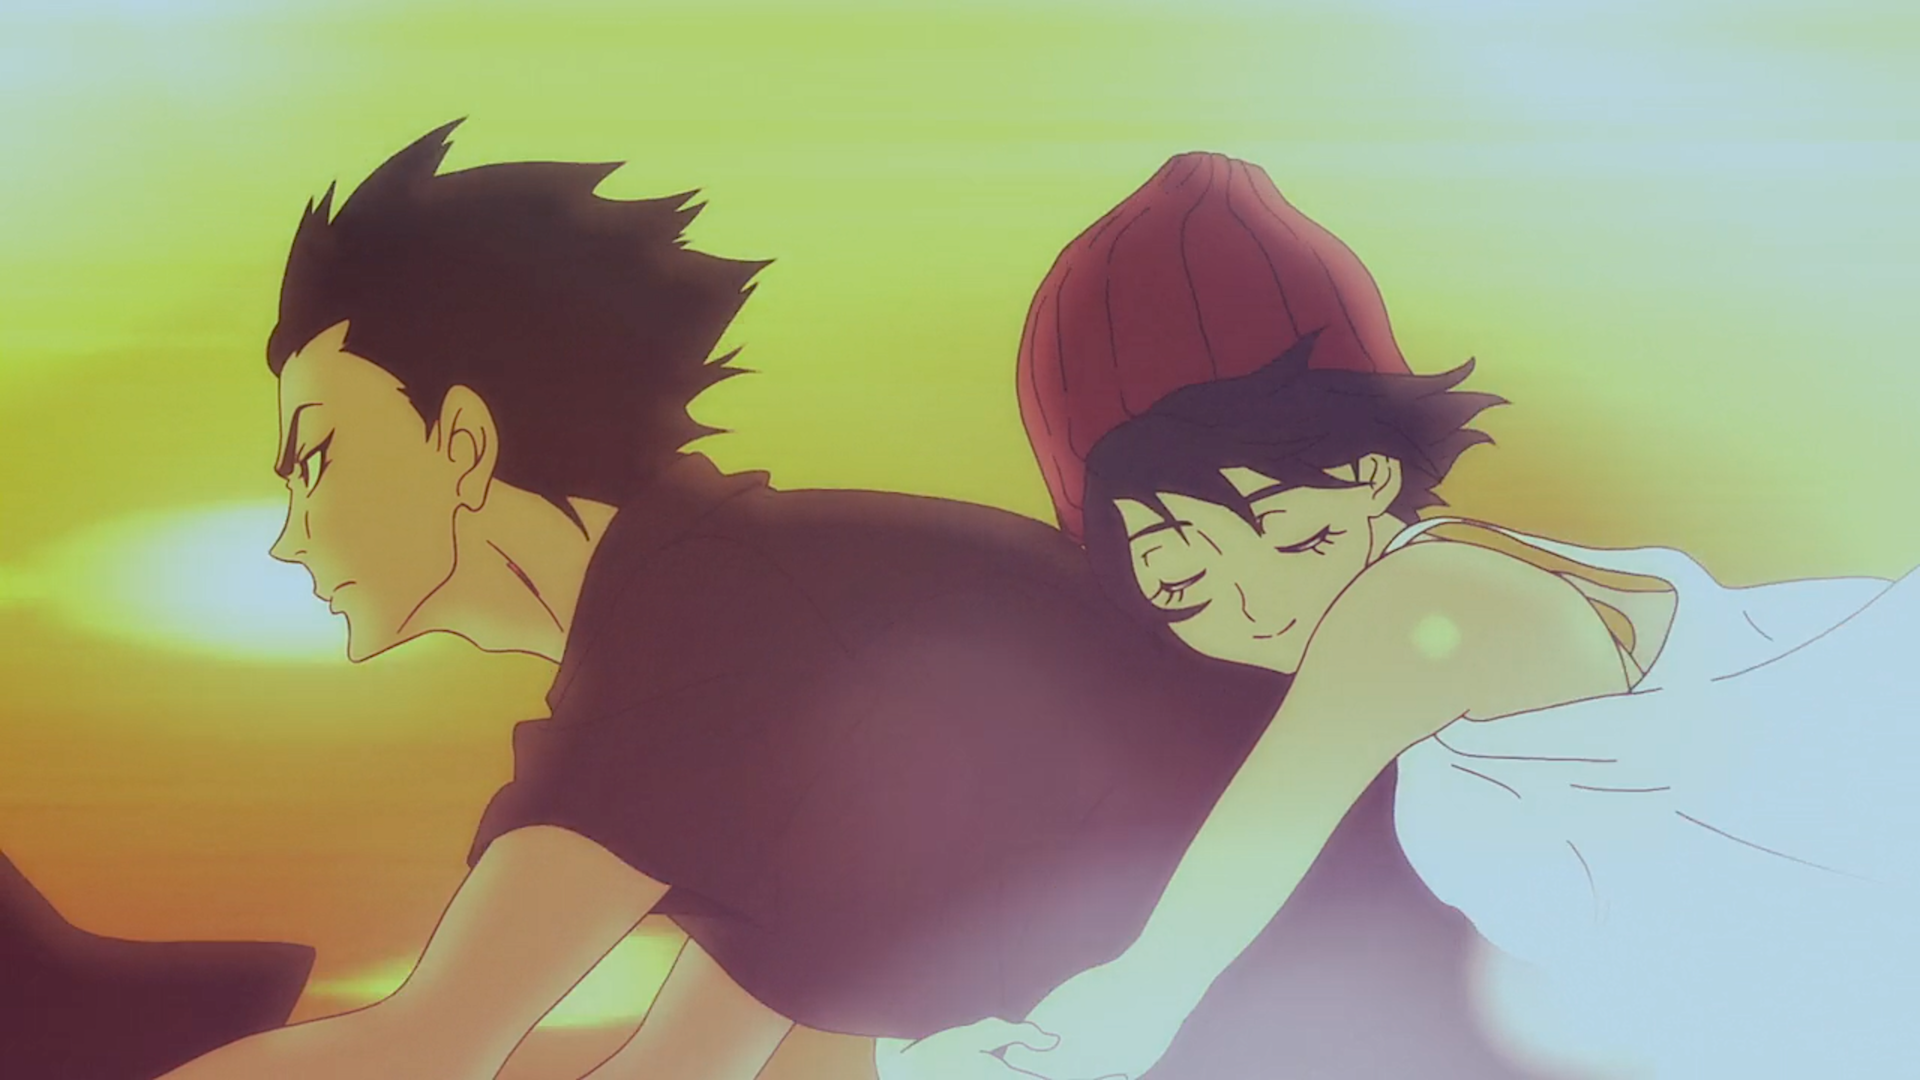 Akira And Miki Hd Wallpaper Background Image 1920x1080 Id 903553 Wallpaper Abyss